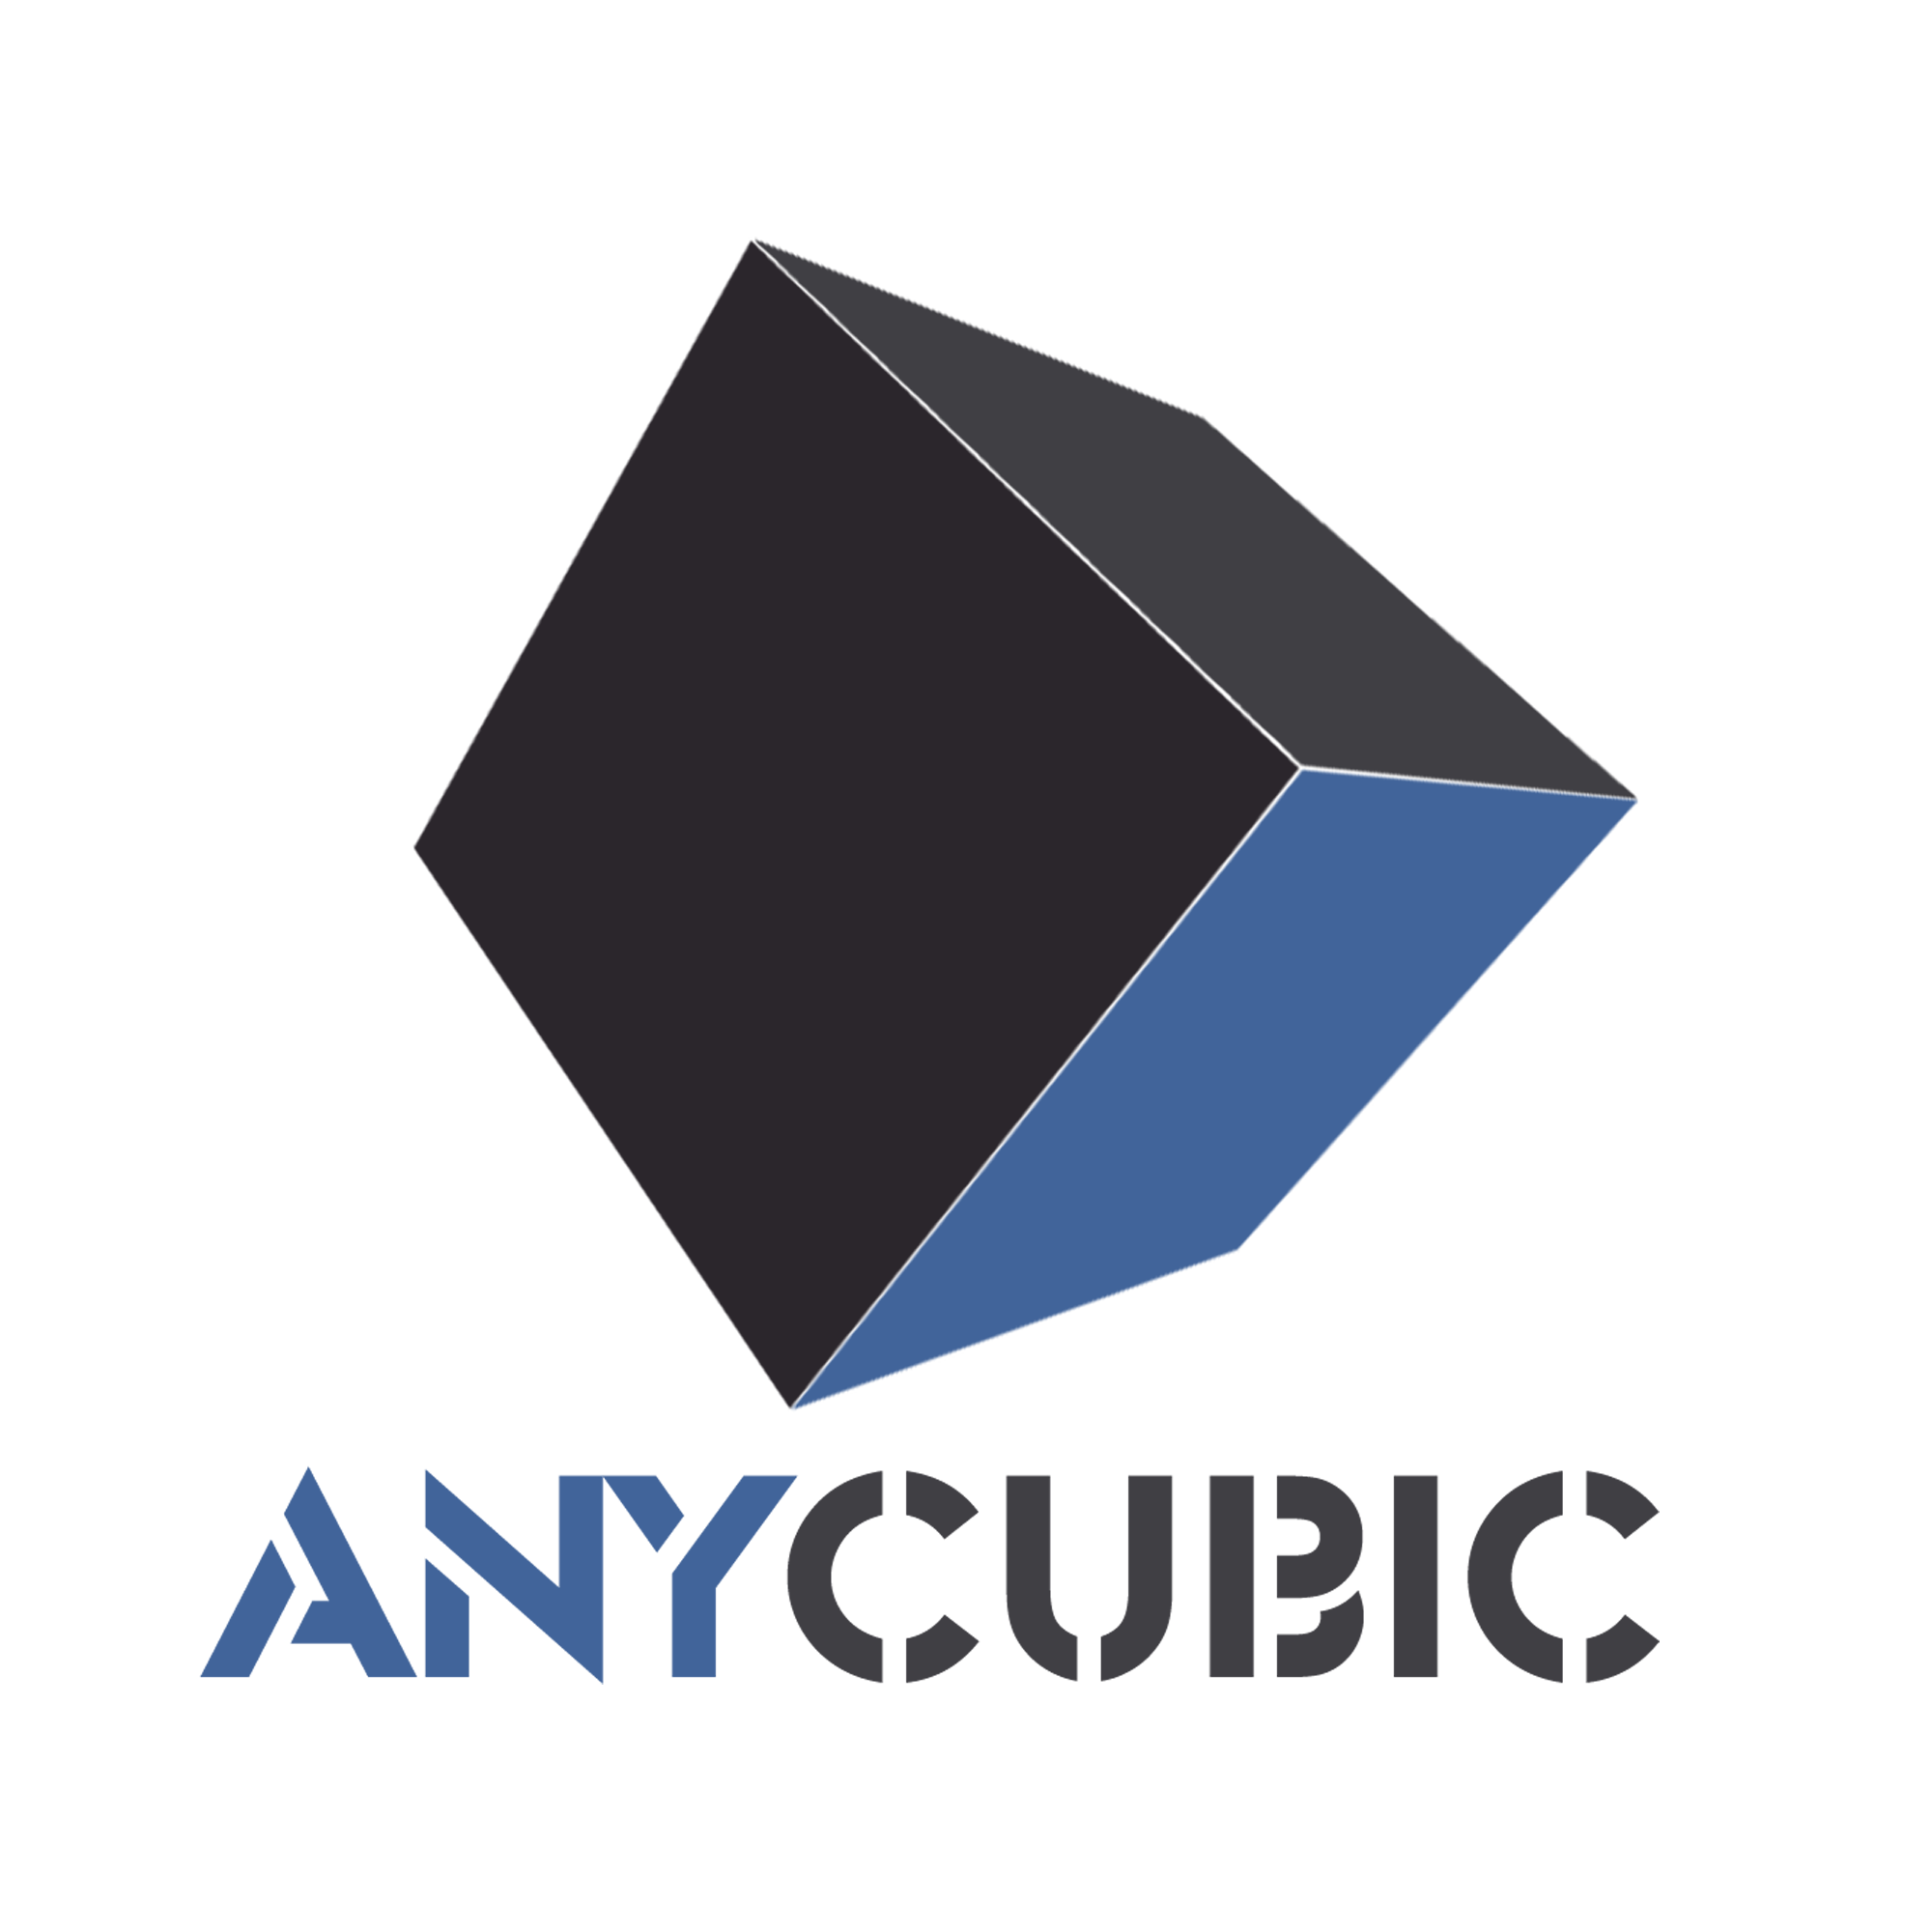 ANYCUBIC Discount Code: $20 Off Mega S